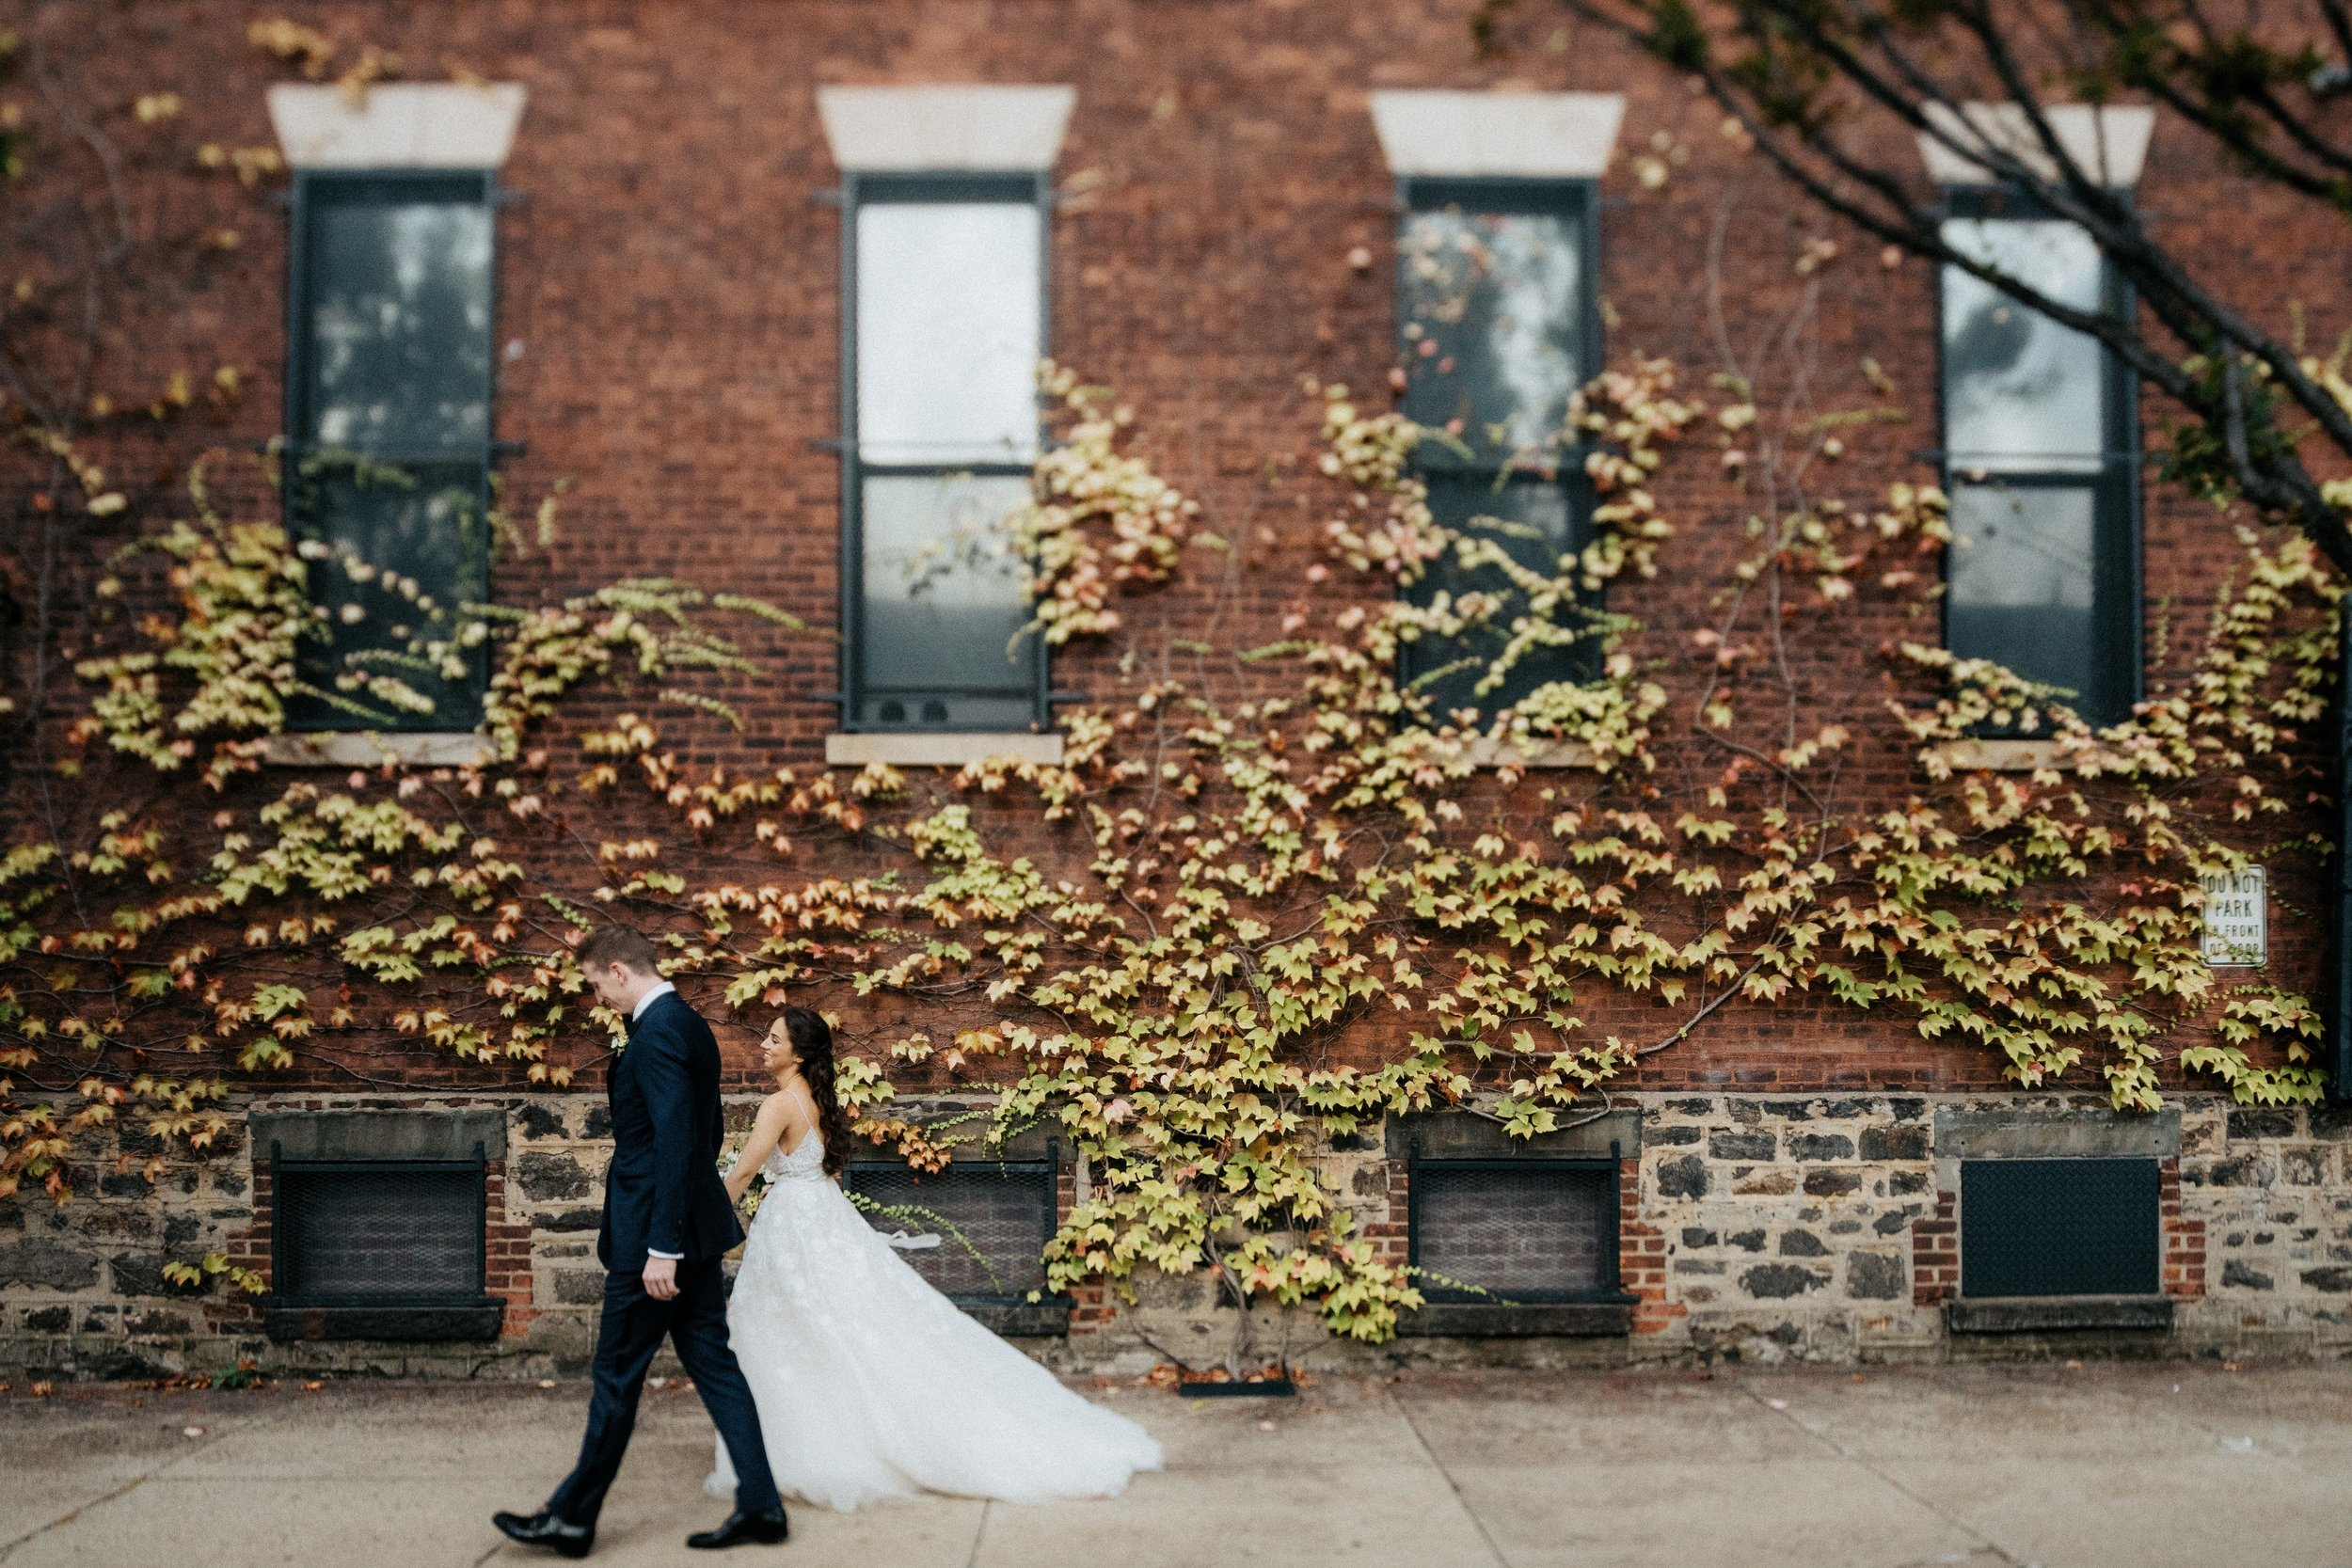 Isabella and will's classically elegant wedding at the foundry in queens